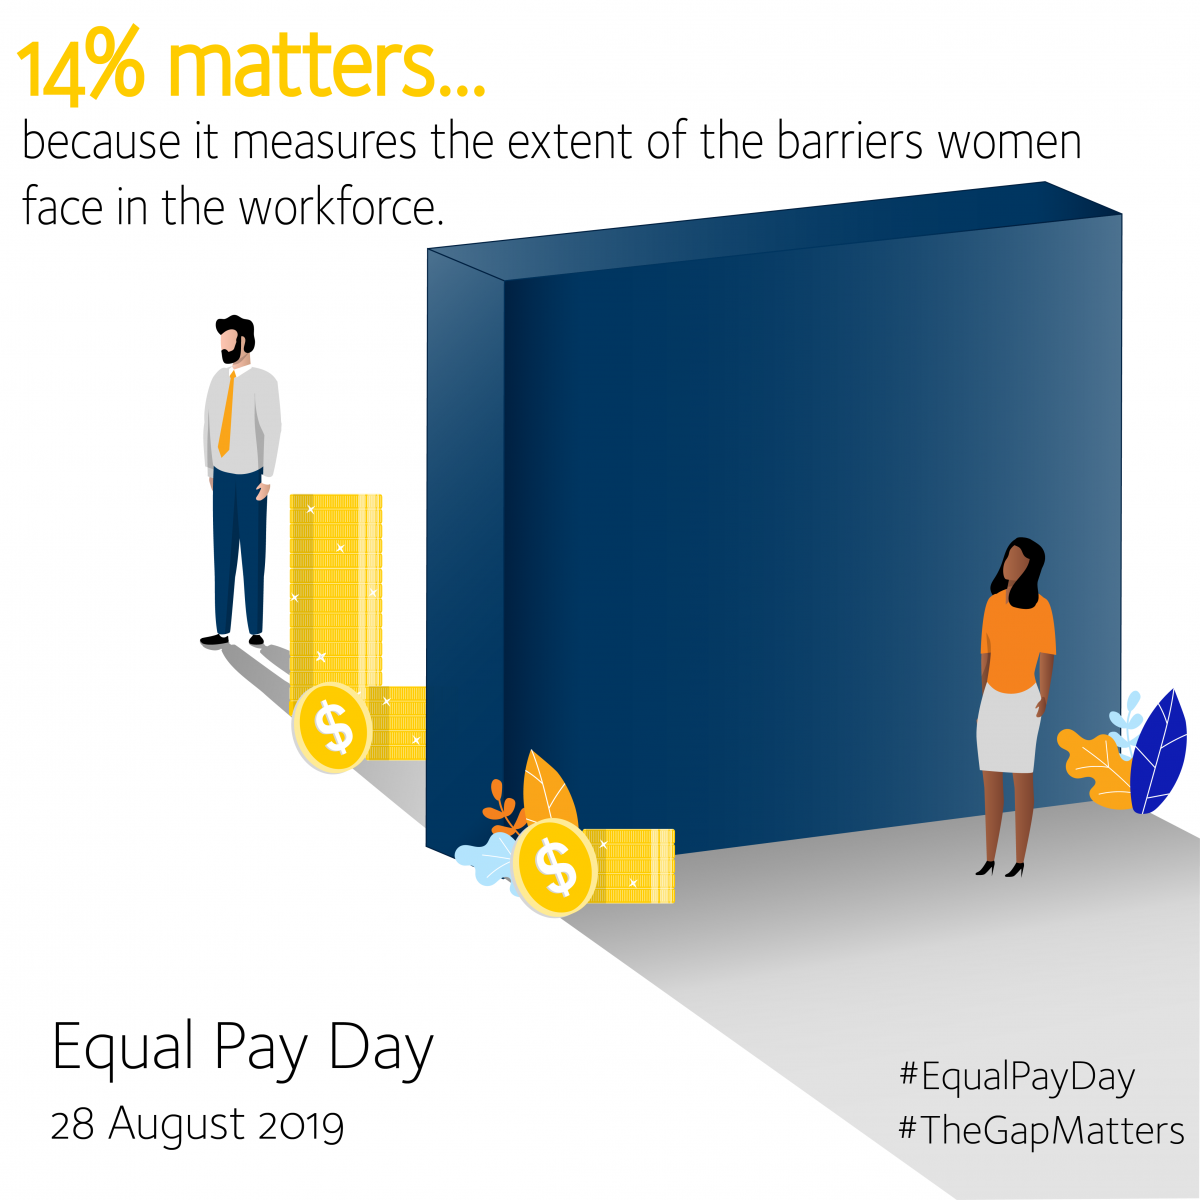 Equal Pay Day 2019 - #TheGapMatters - Barriers